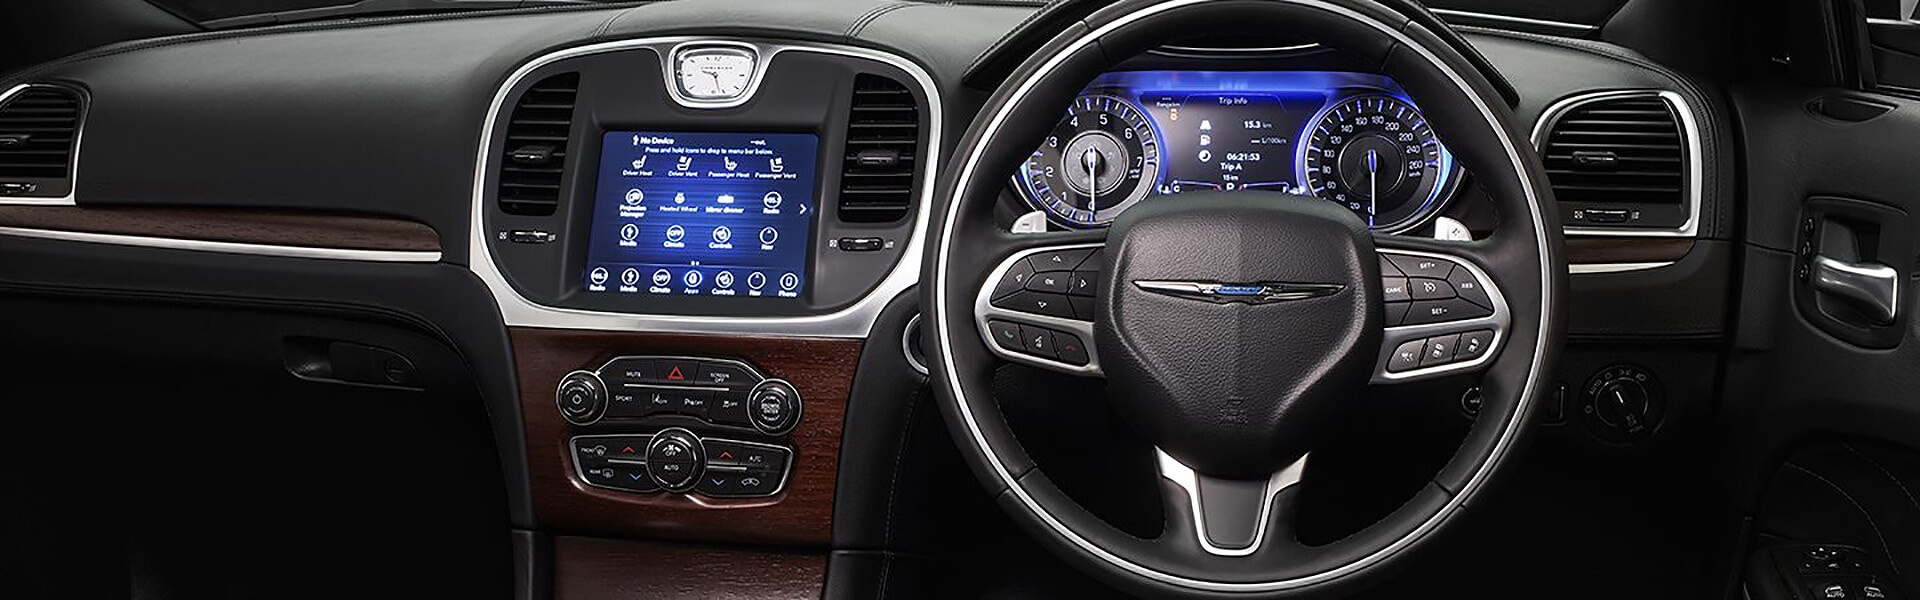 Chrysler 300C Luxury Interior